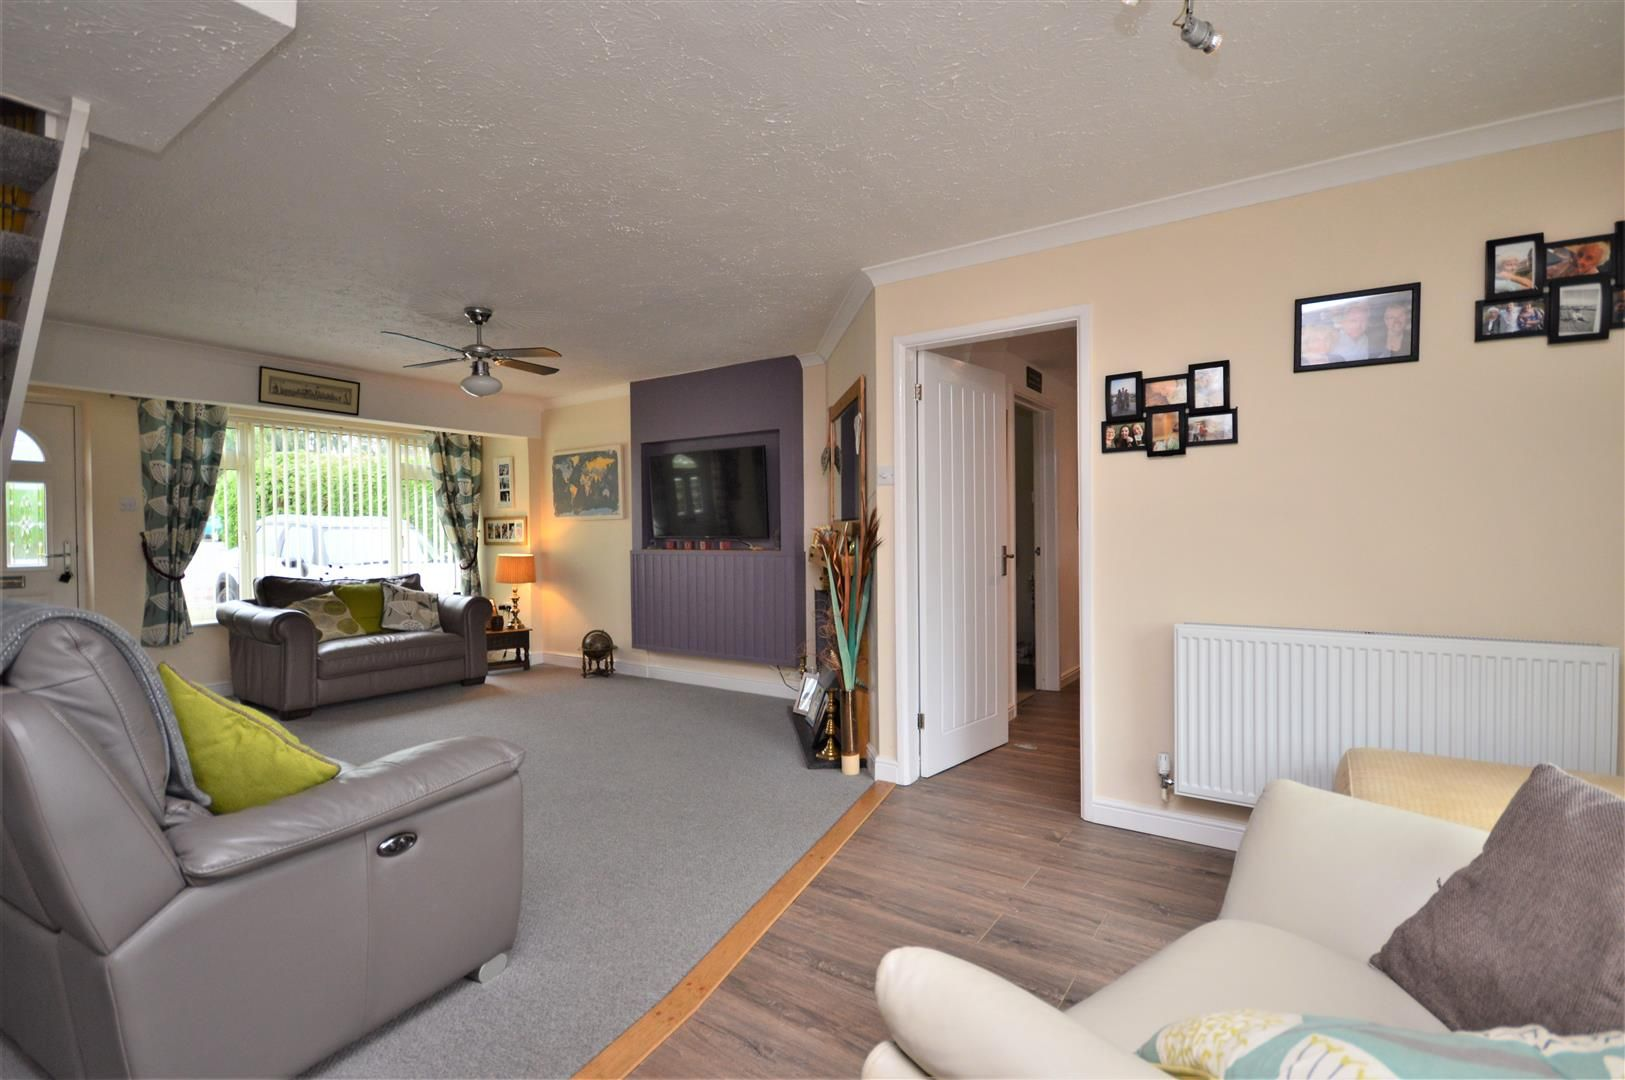 4 bed semi-detached for sale in Clehonger 7